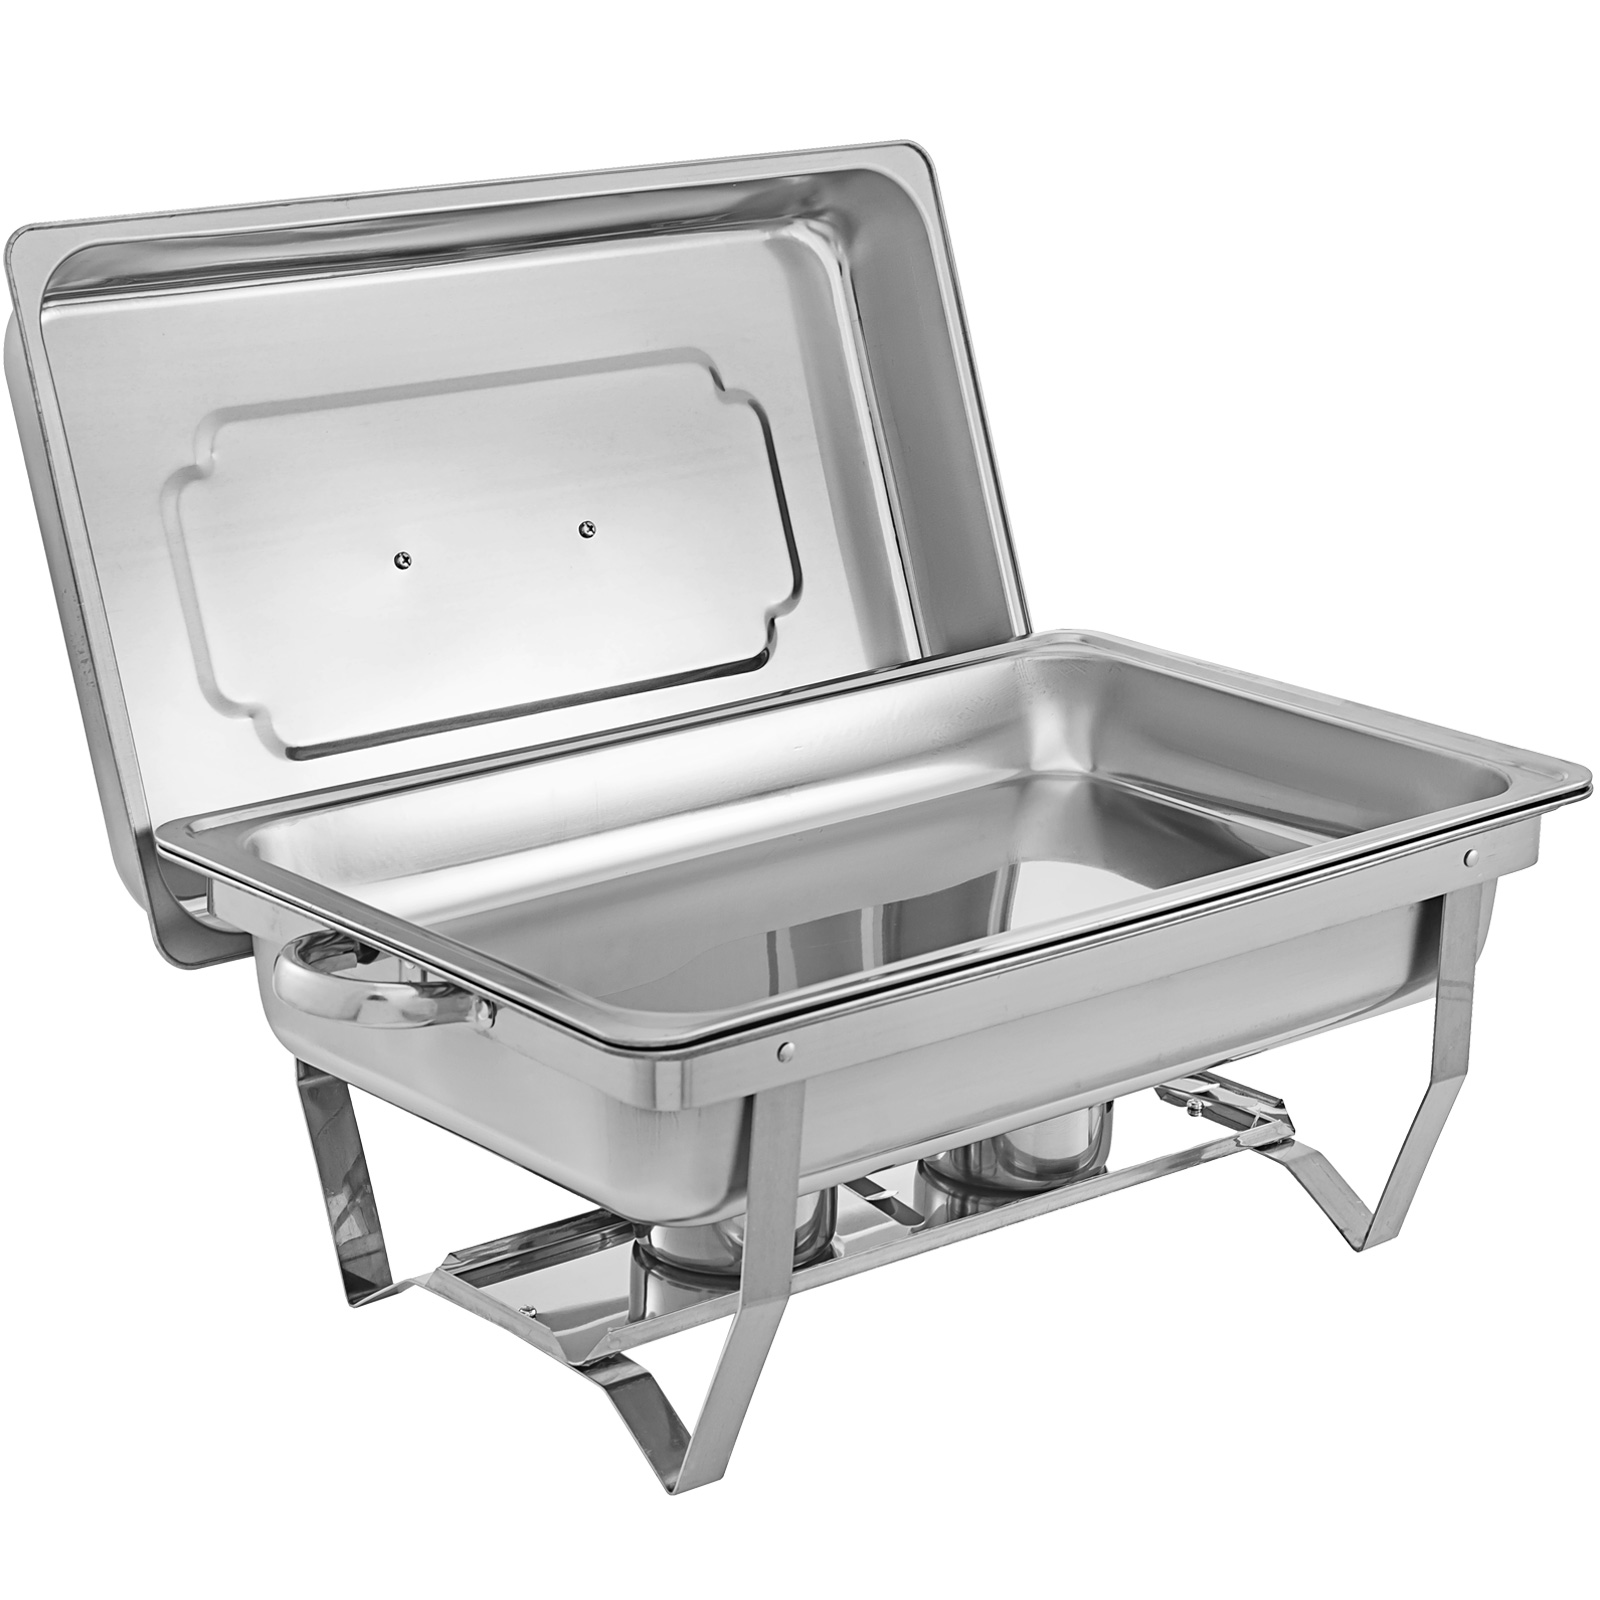 thumbnail 47 - Multi-Stainless-Steel-Chafing-Dish-Bain-Marie-Bow-Catering-Dish-Hotpot-Server